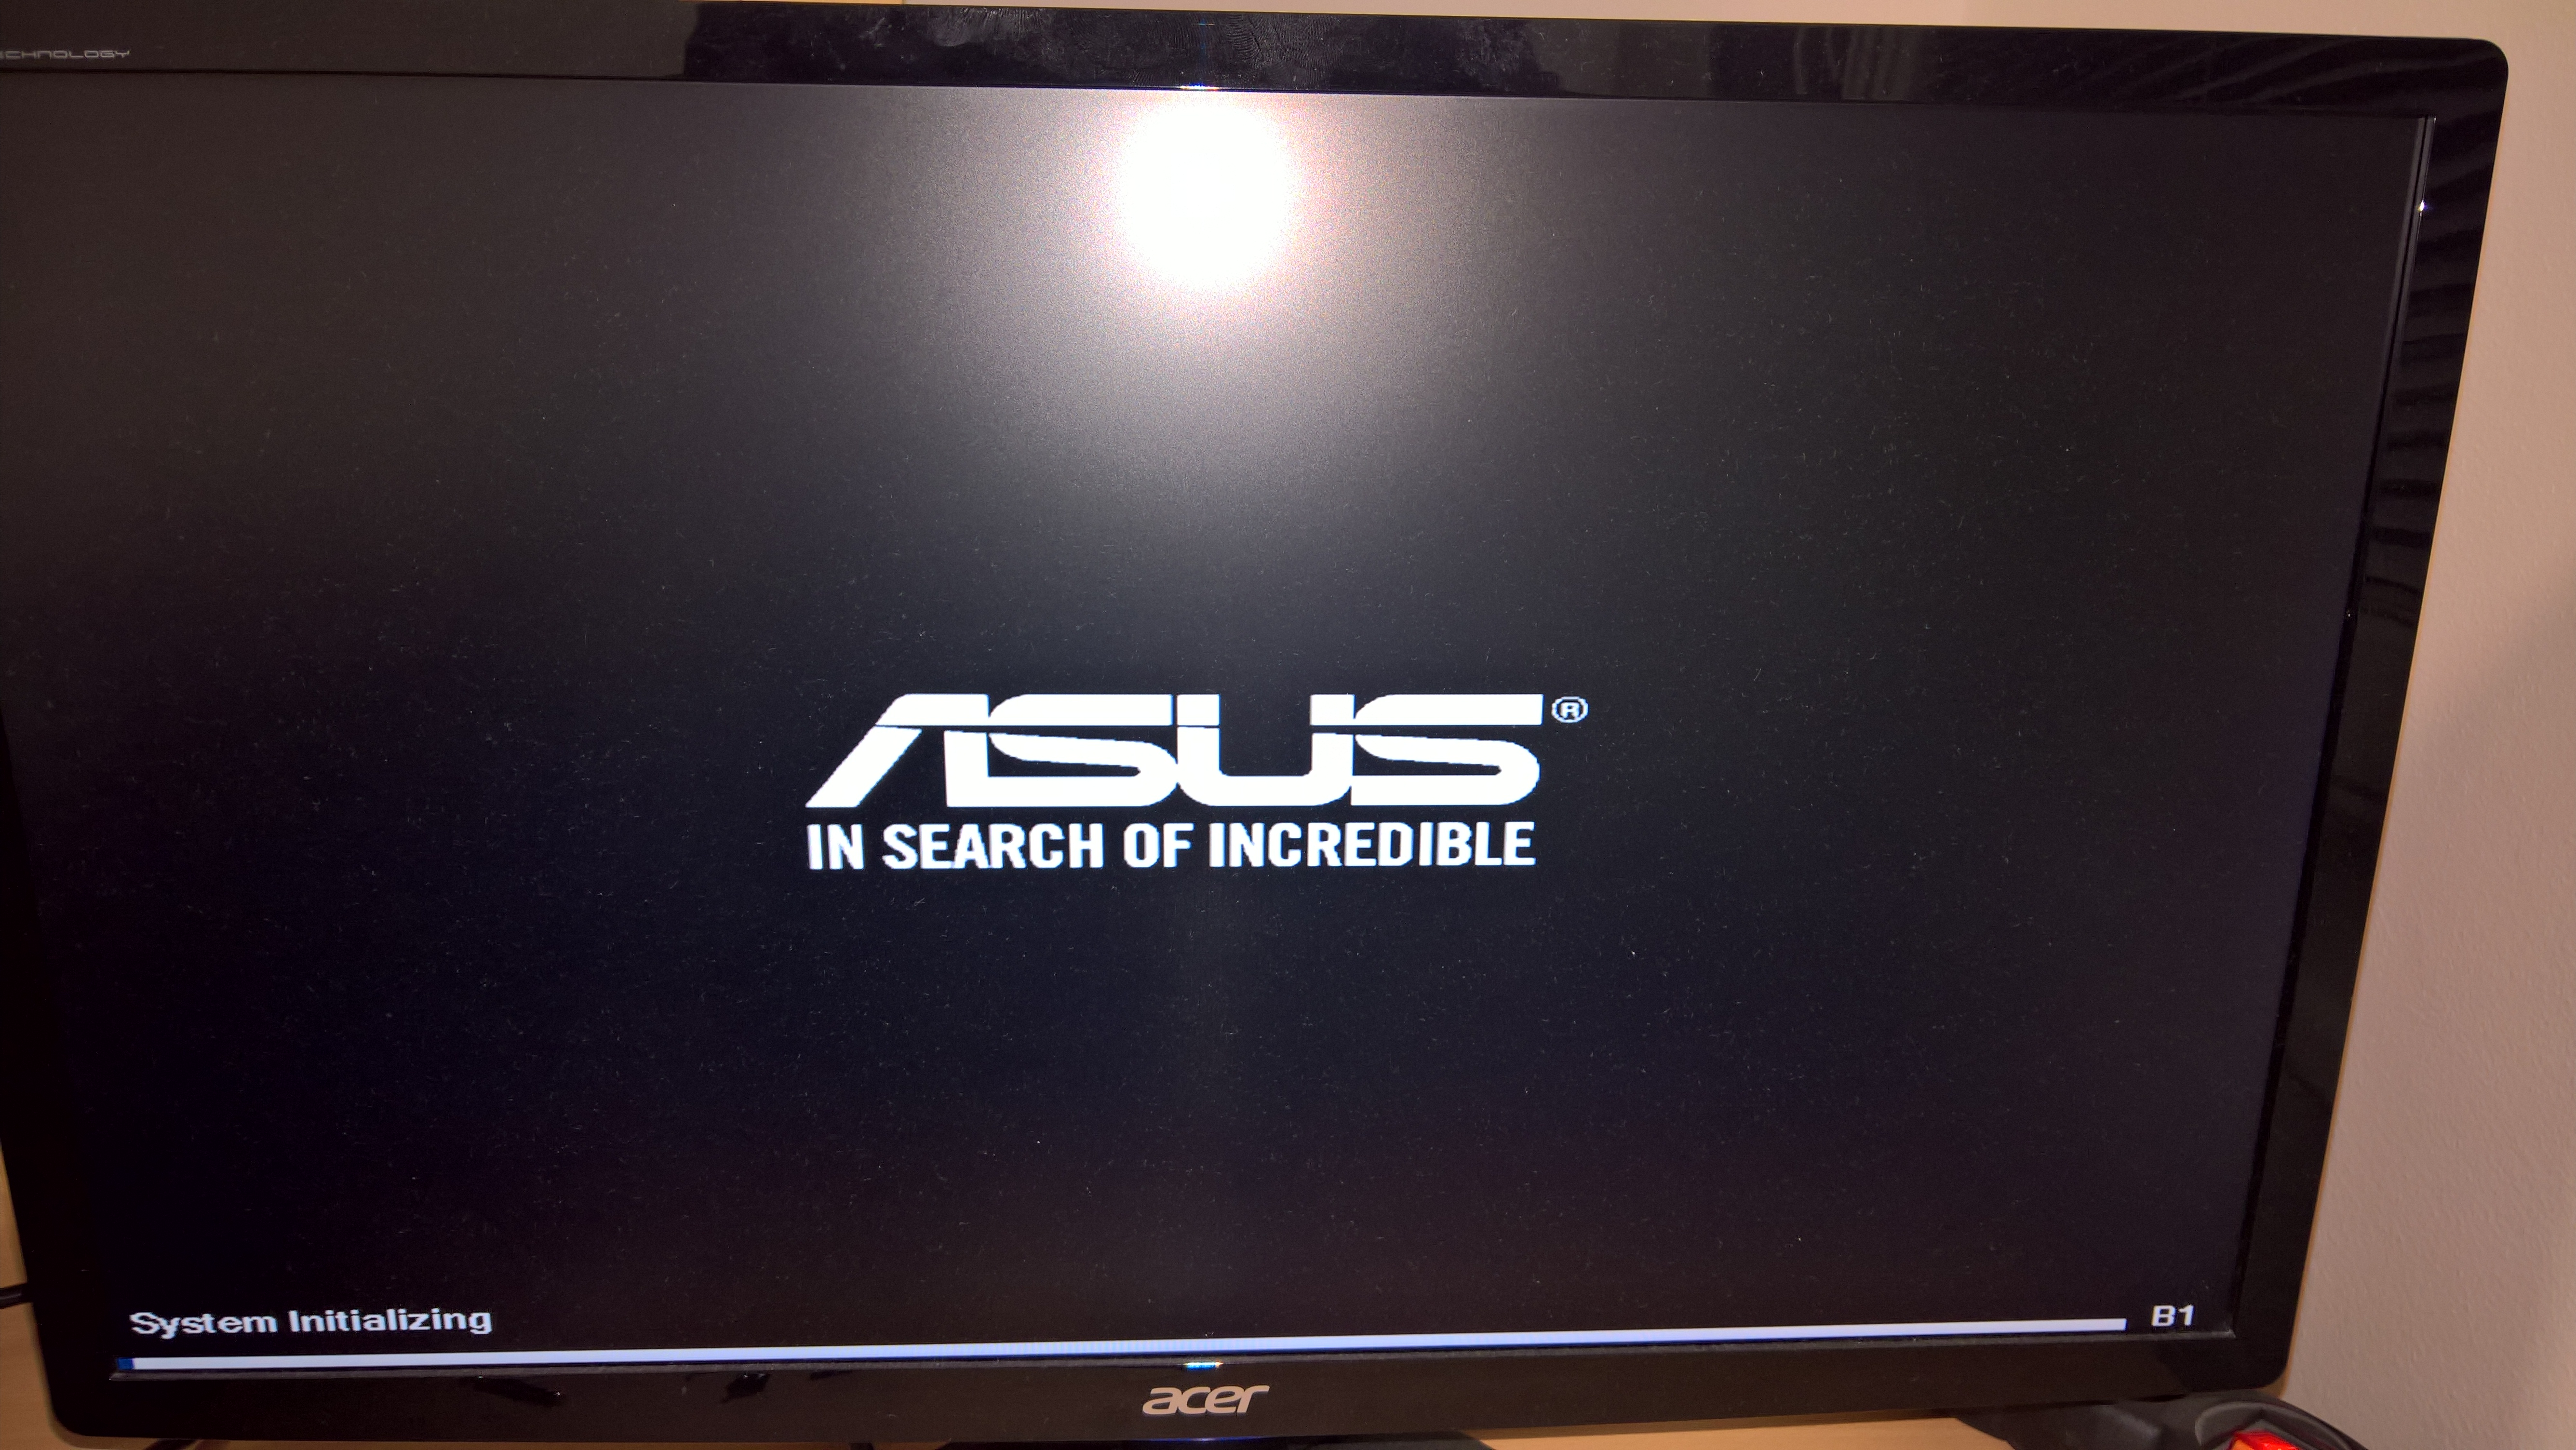 Stuck on system initializing - Troubleshooting - Linus Tech Tips